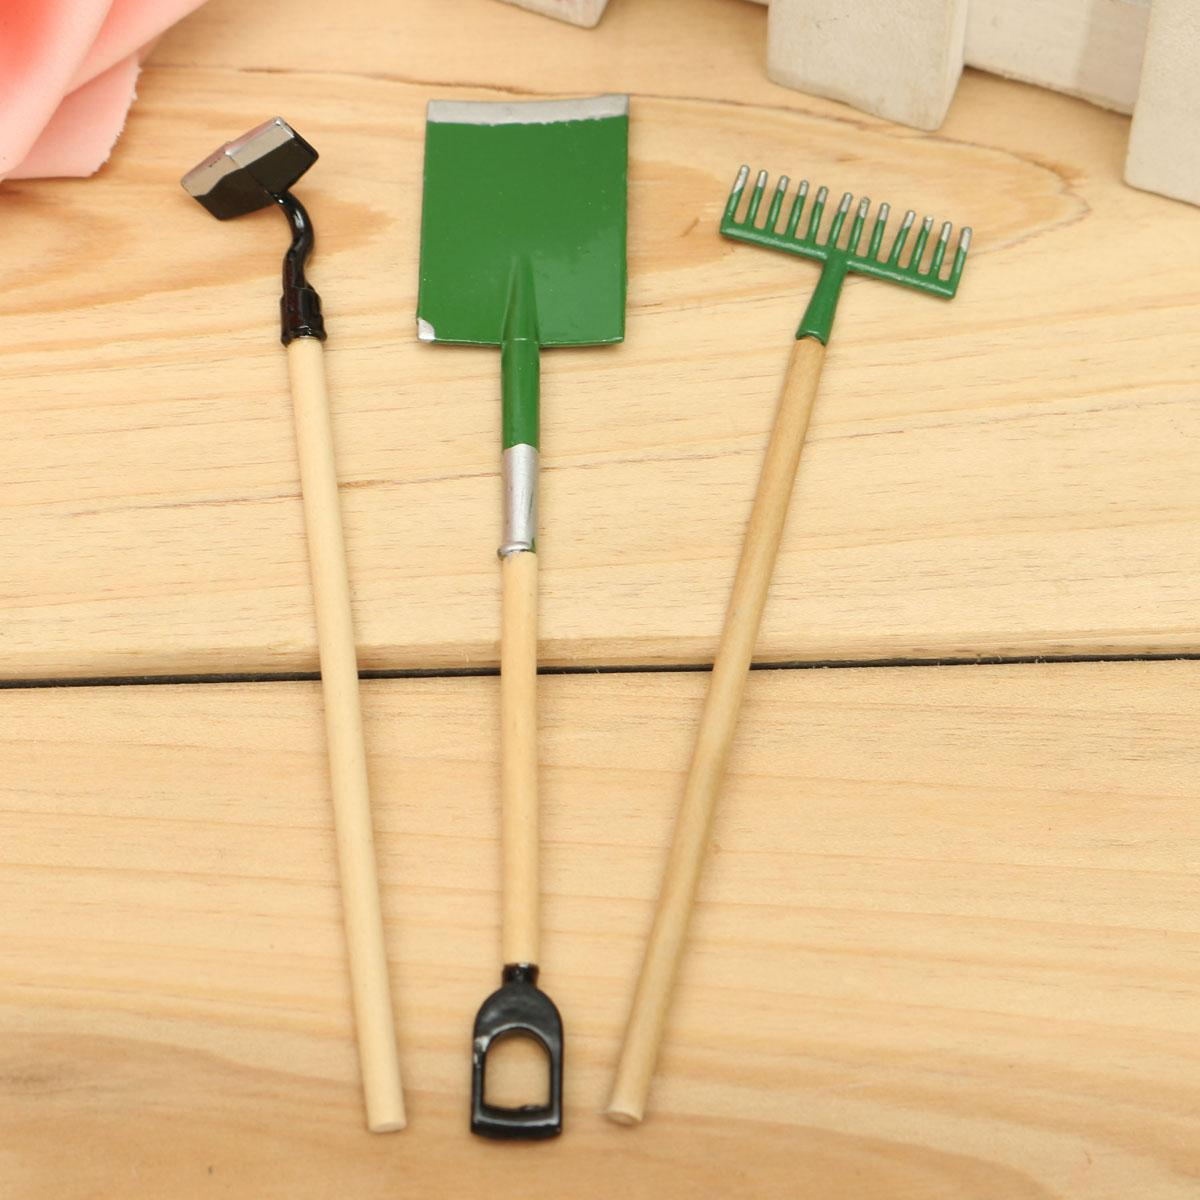 Hot Sale 1 12 Scale Three Small Garden Tools Set Spade Rake Shed Outdoor Gardening  Dolls House Miniature Accessory Plastic Dollhouse Furniture Sets Barbie. Hot Sale 1 12 Scale Three Small Garden Tools Set Spade Rake Shed